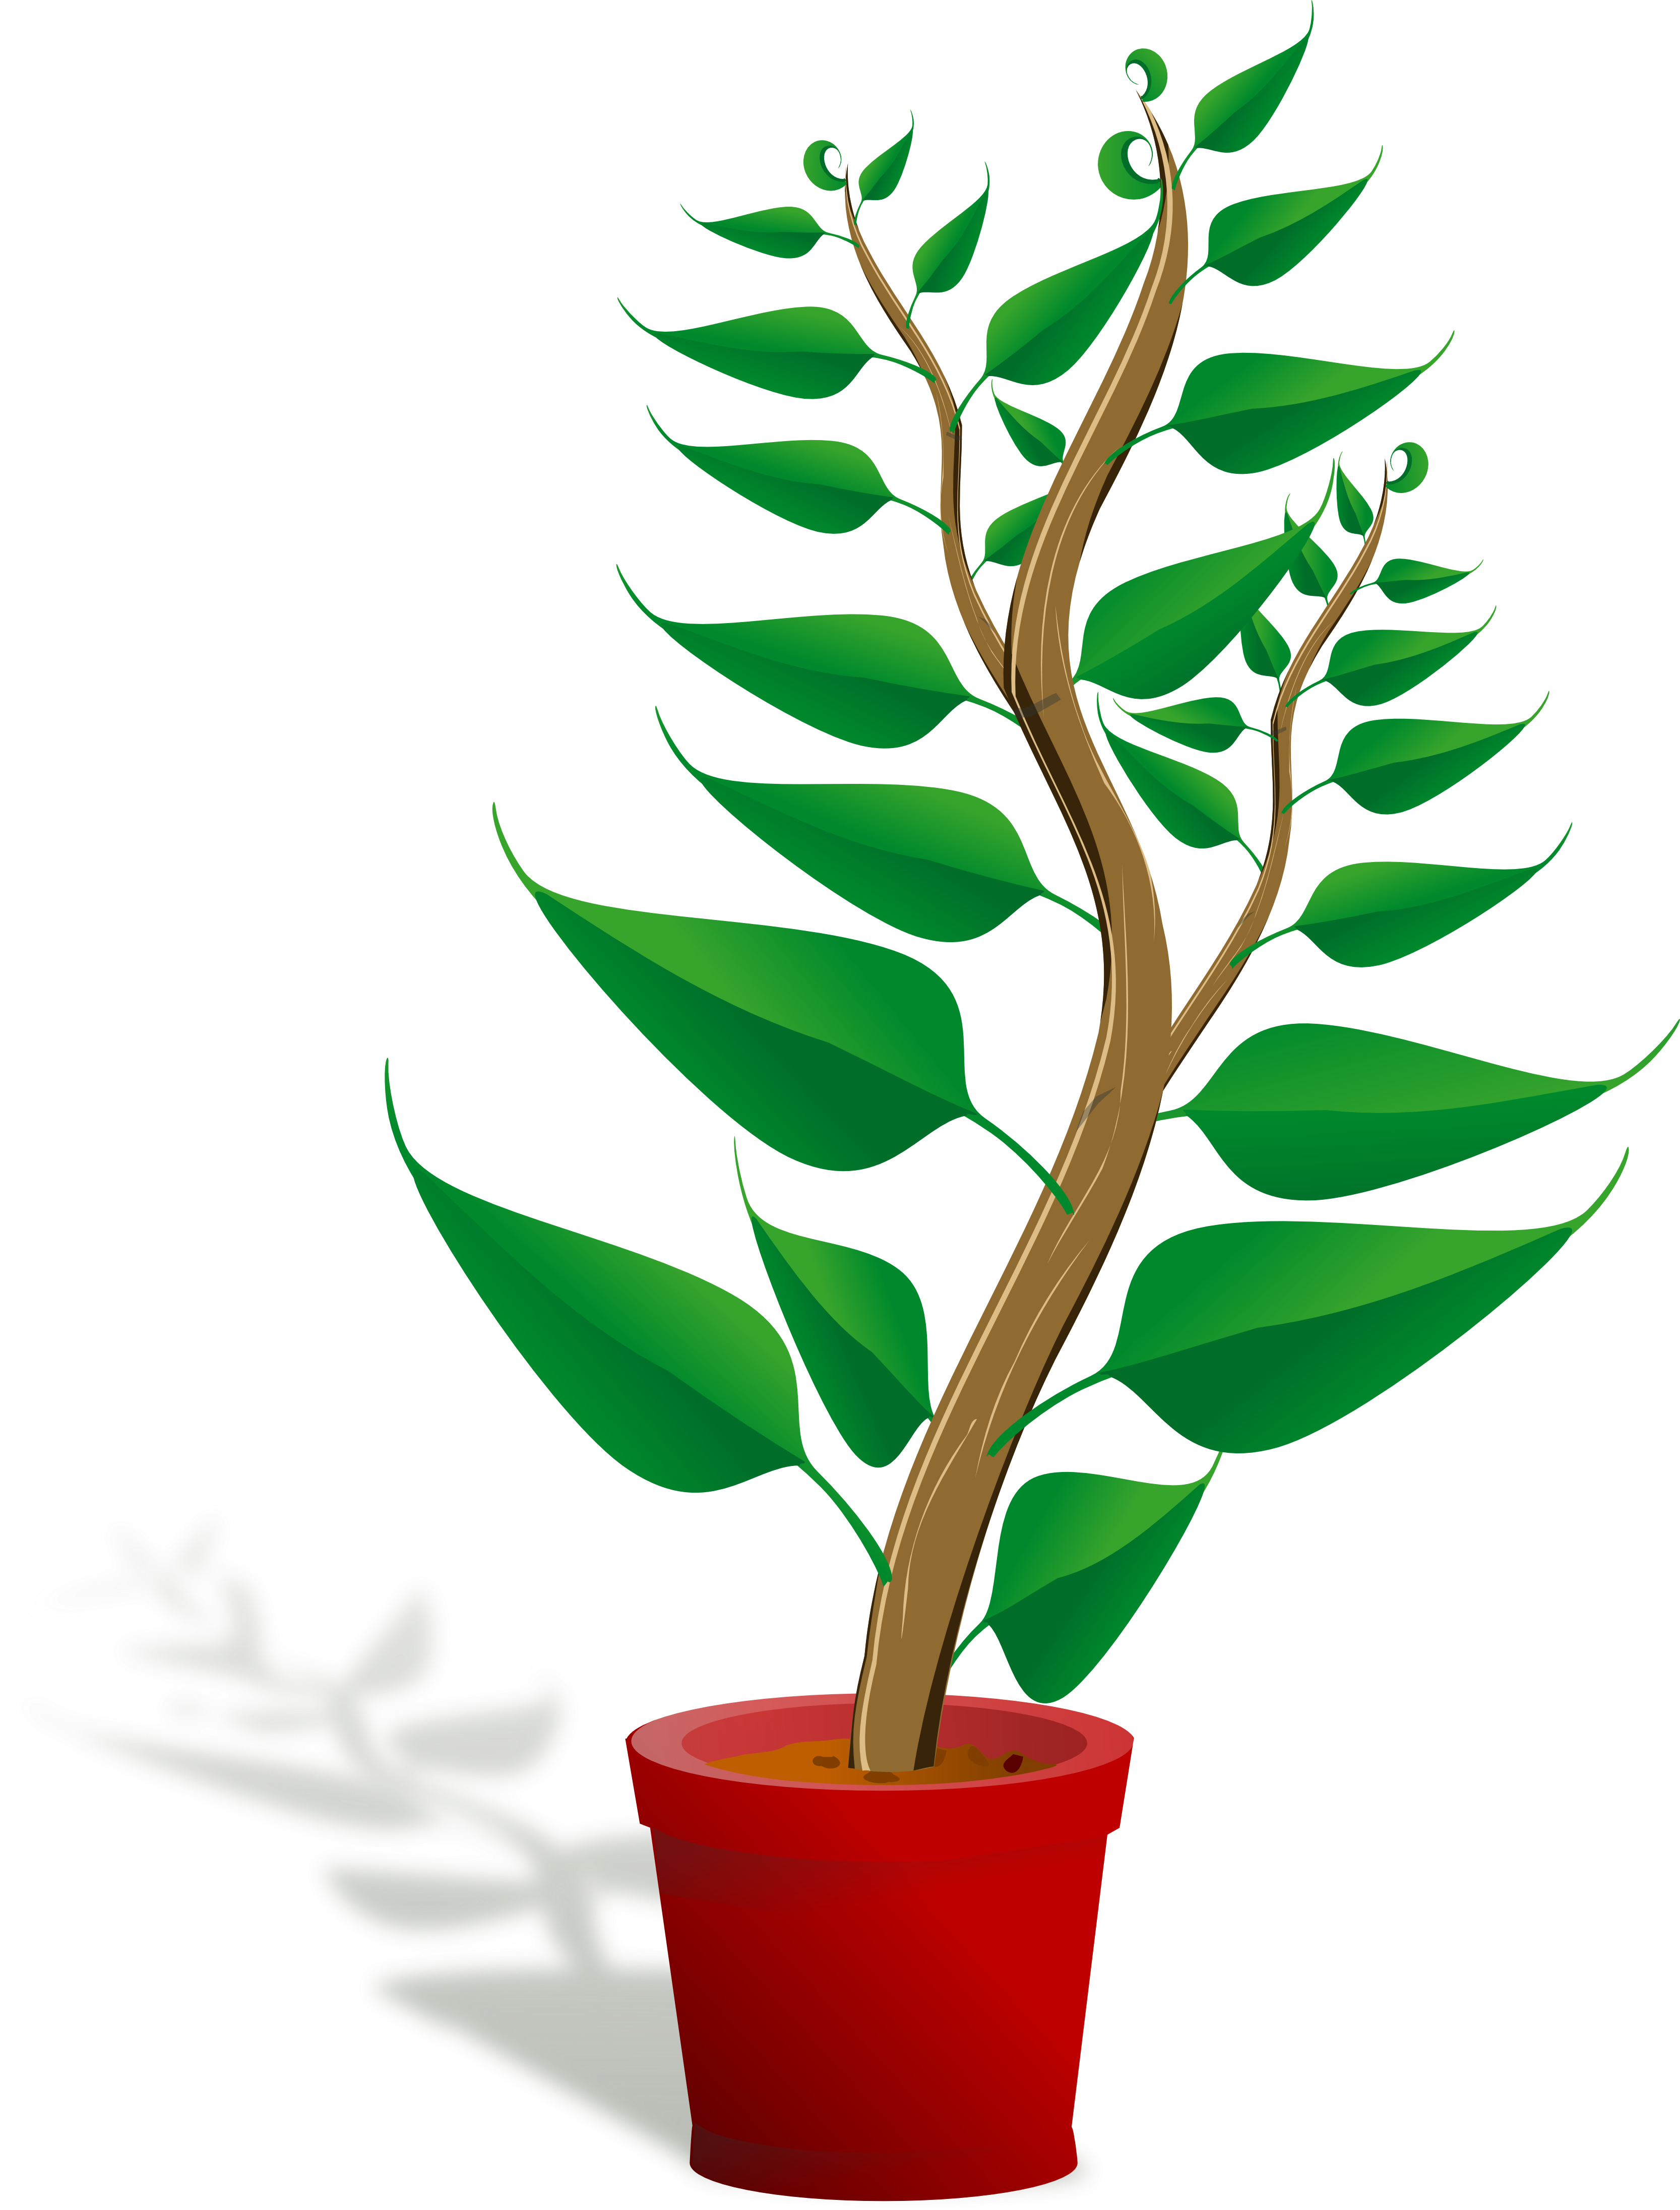 Plant image clipart vector free stock Plants clip art free clipart images - Cliparting.com vector free stock